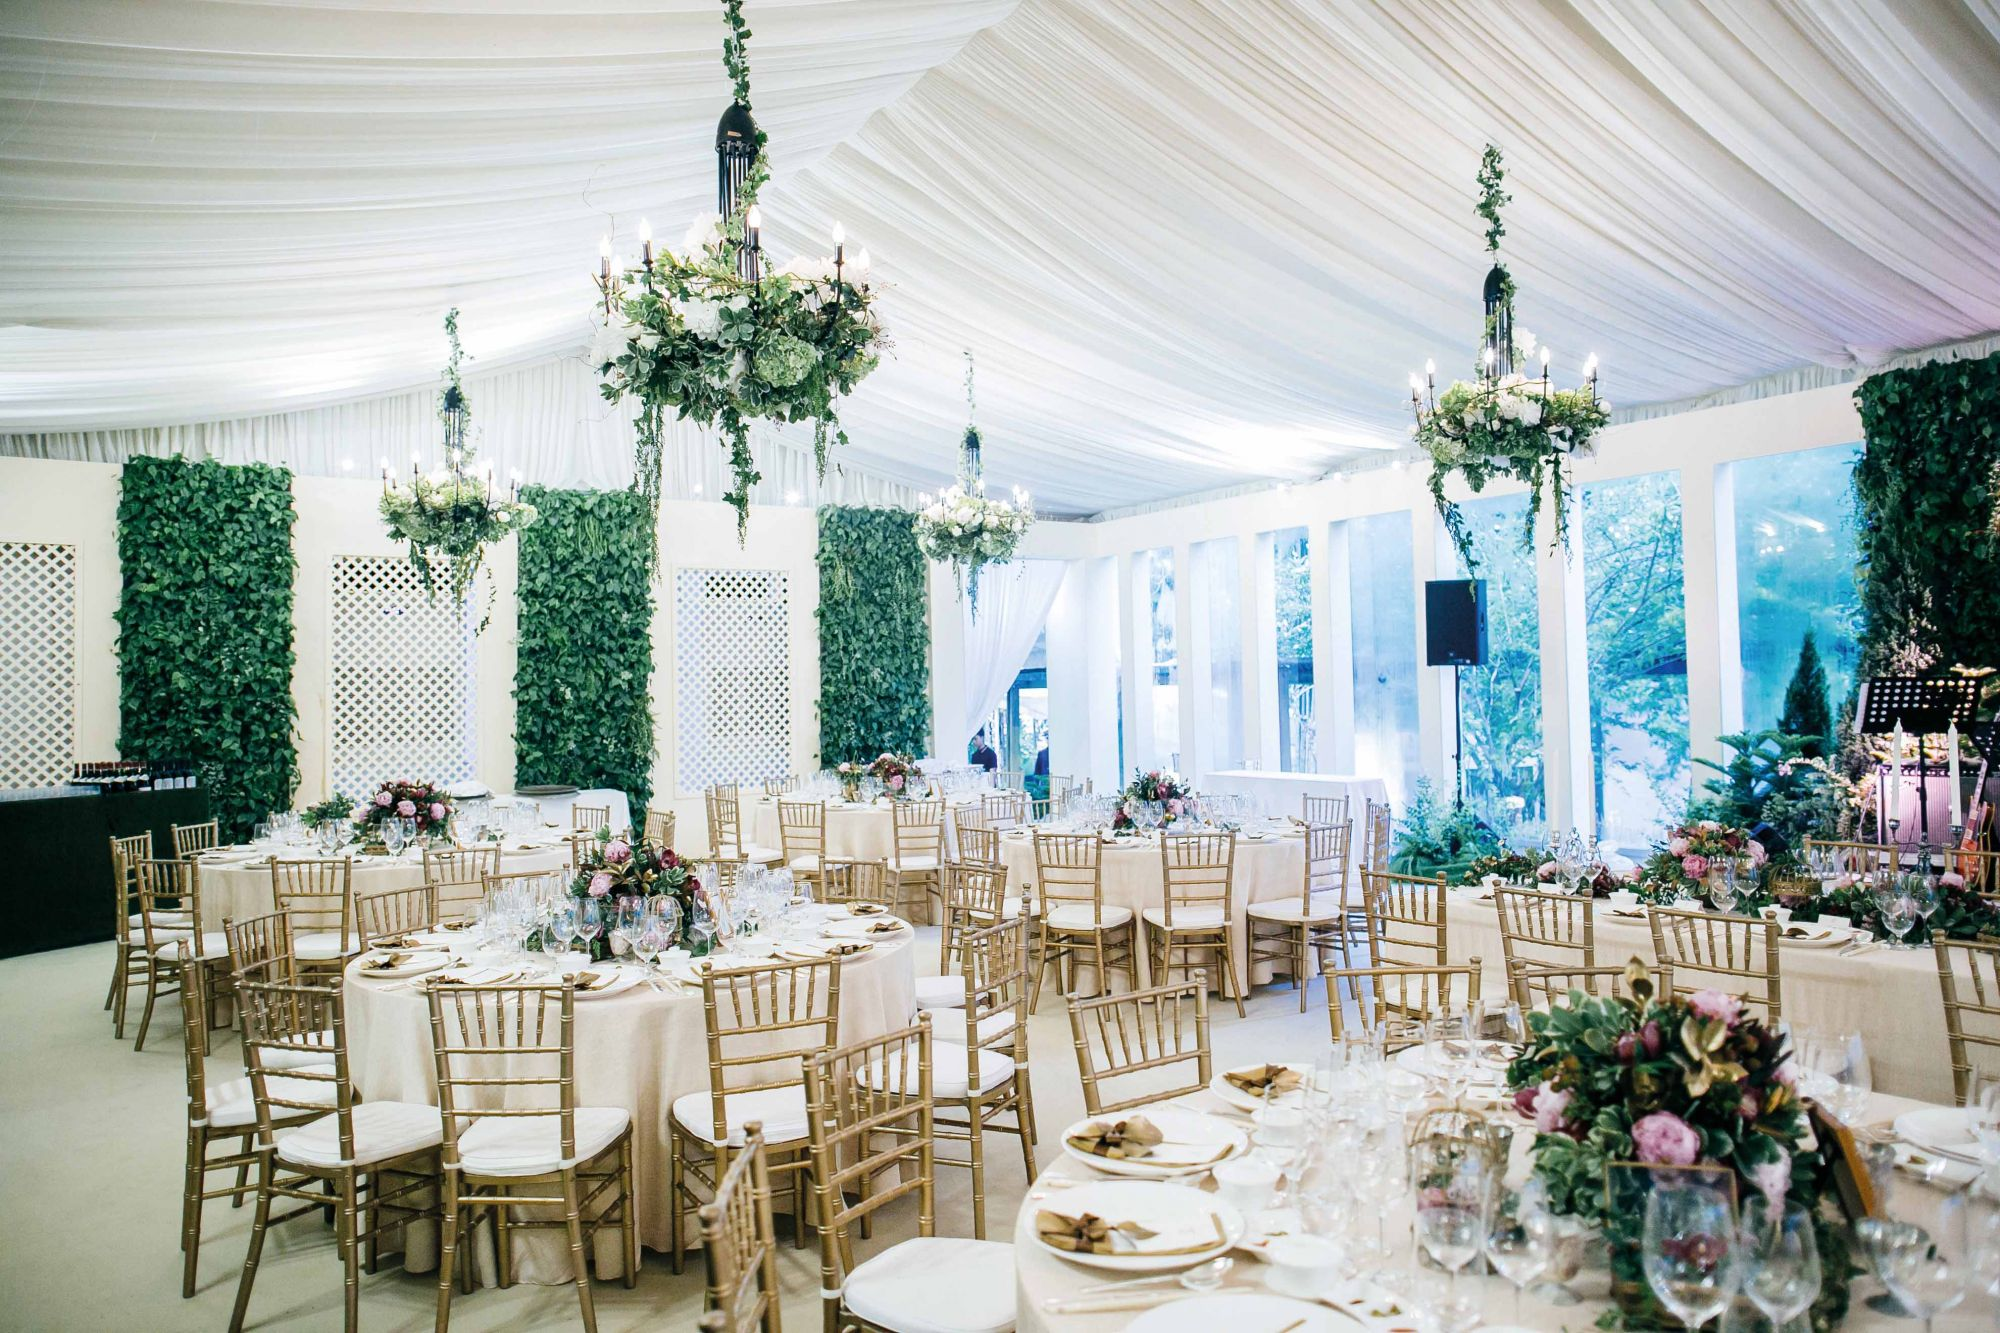 Idyllic Ideas For A Dreamy, Yet Memorable Wedding